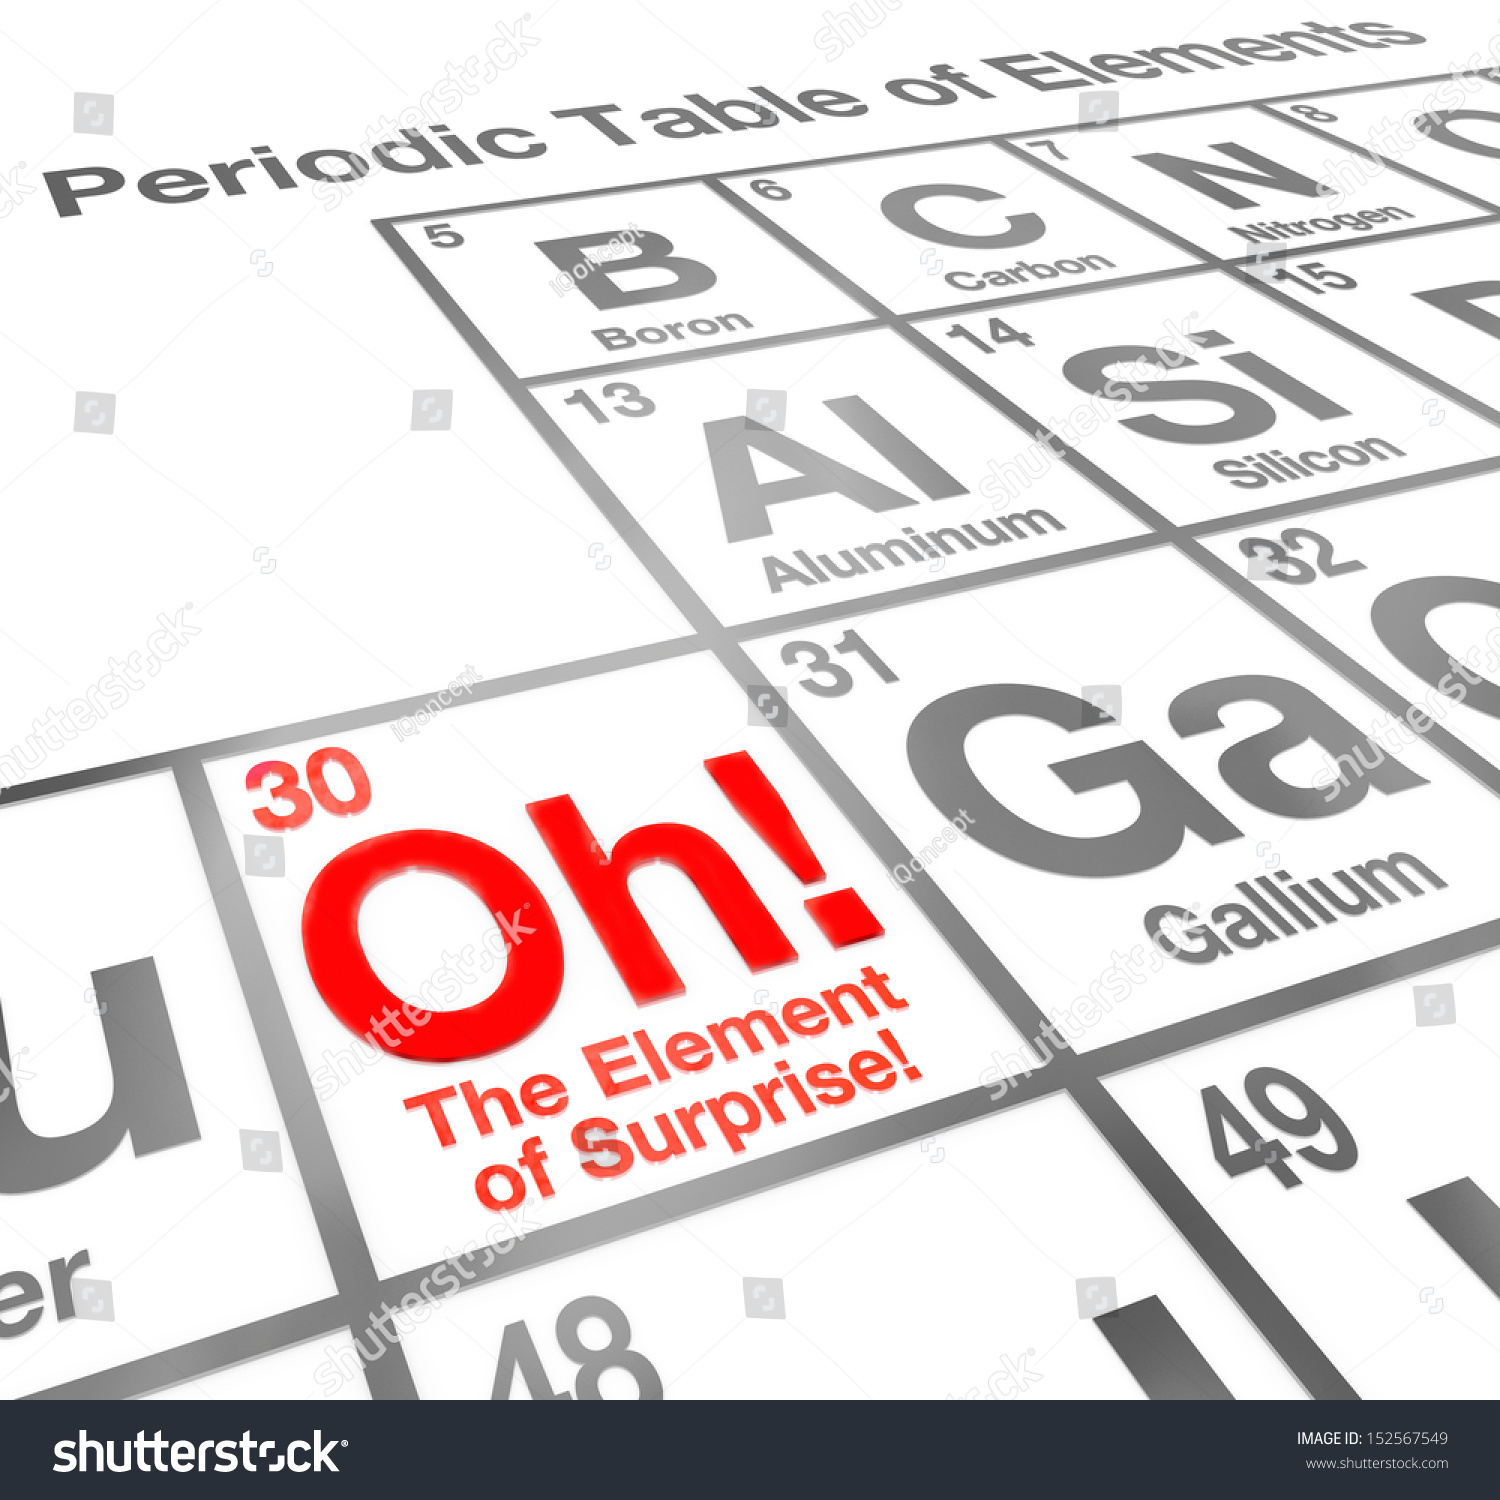 Rarest element on periodic table image collections periodic words element surprise on periodic table stock illustration the words element of surprise on a periodic gamestrikefo Images